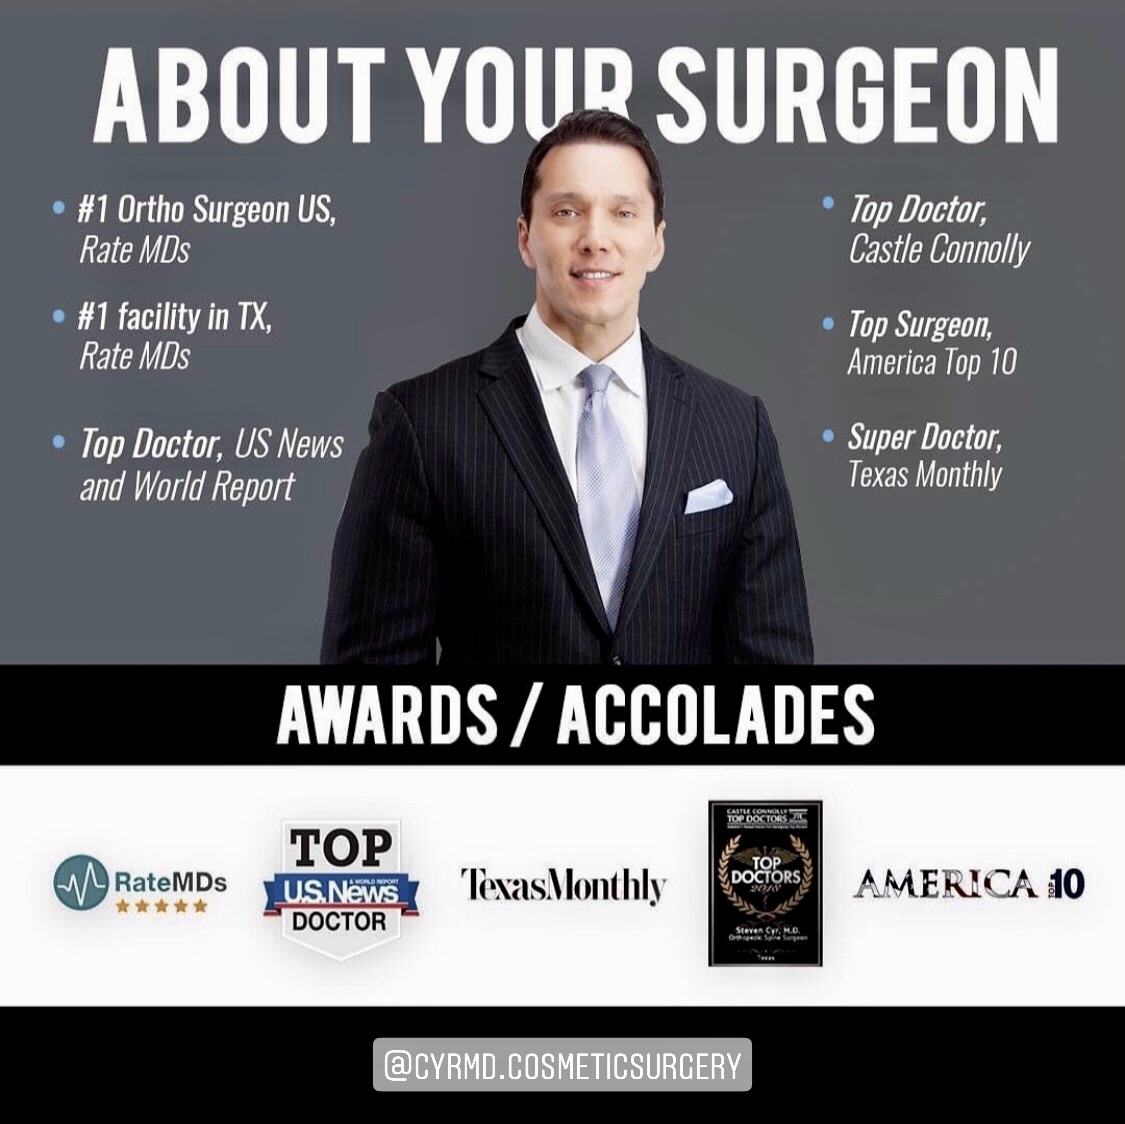 About Your Surgeon